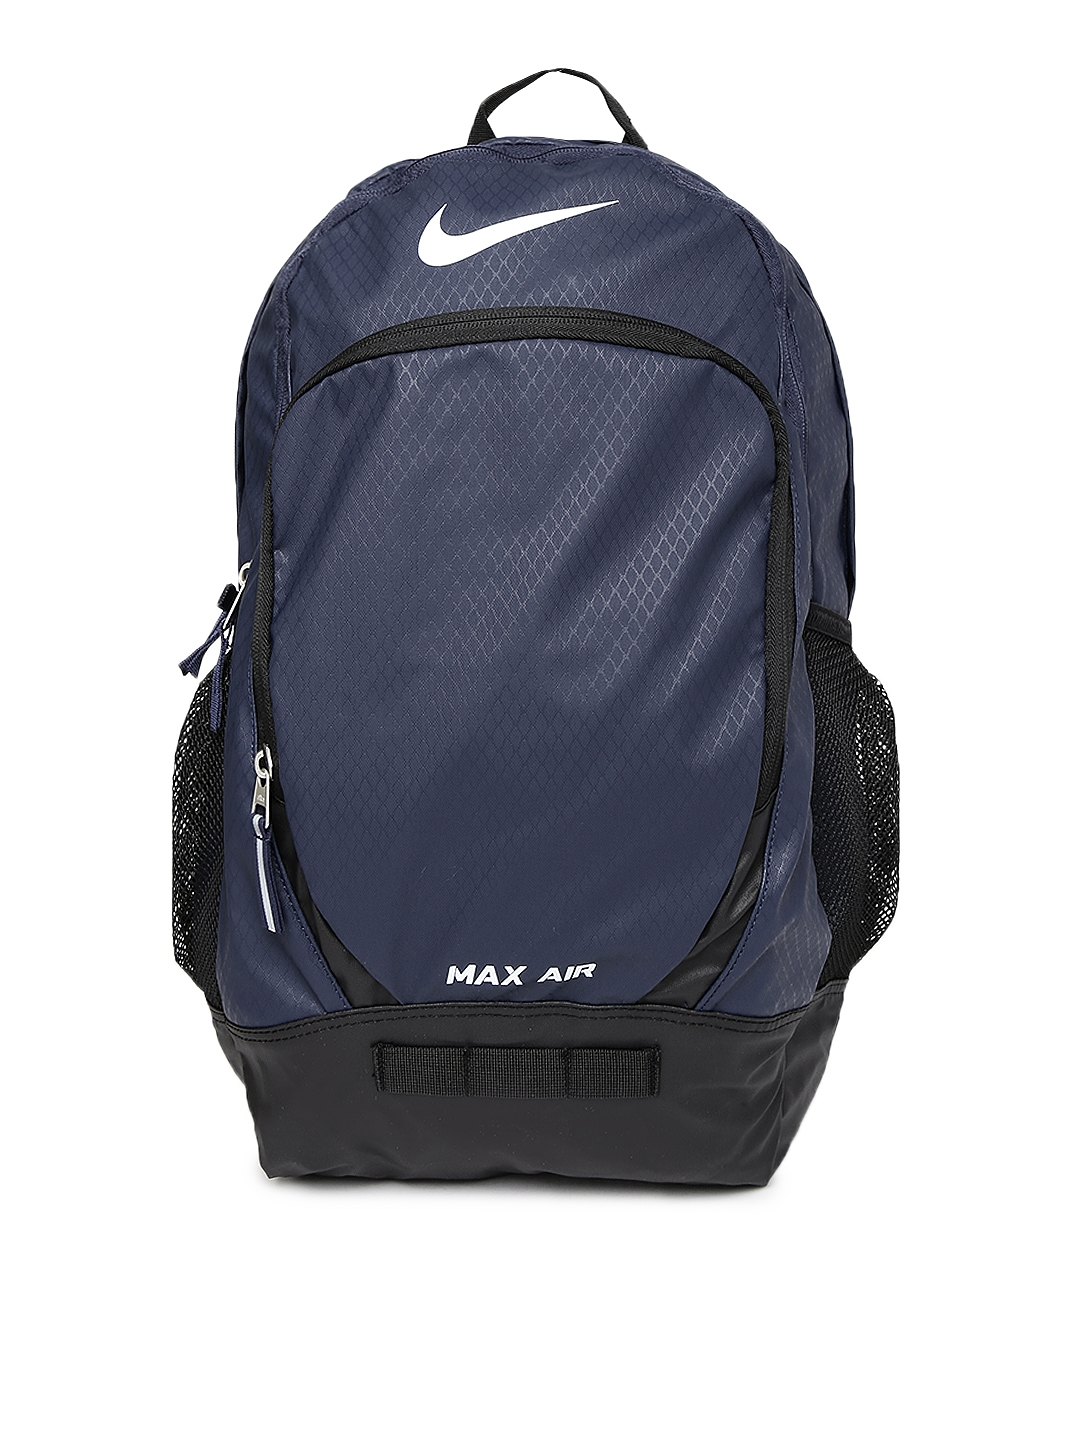 Buy Nike Unisex Navy   Black Team Training Max Air Backpack - Backpacks for Unisex  1110485  11402bbe1d7f8